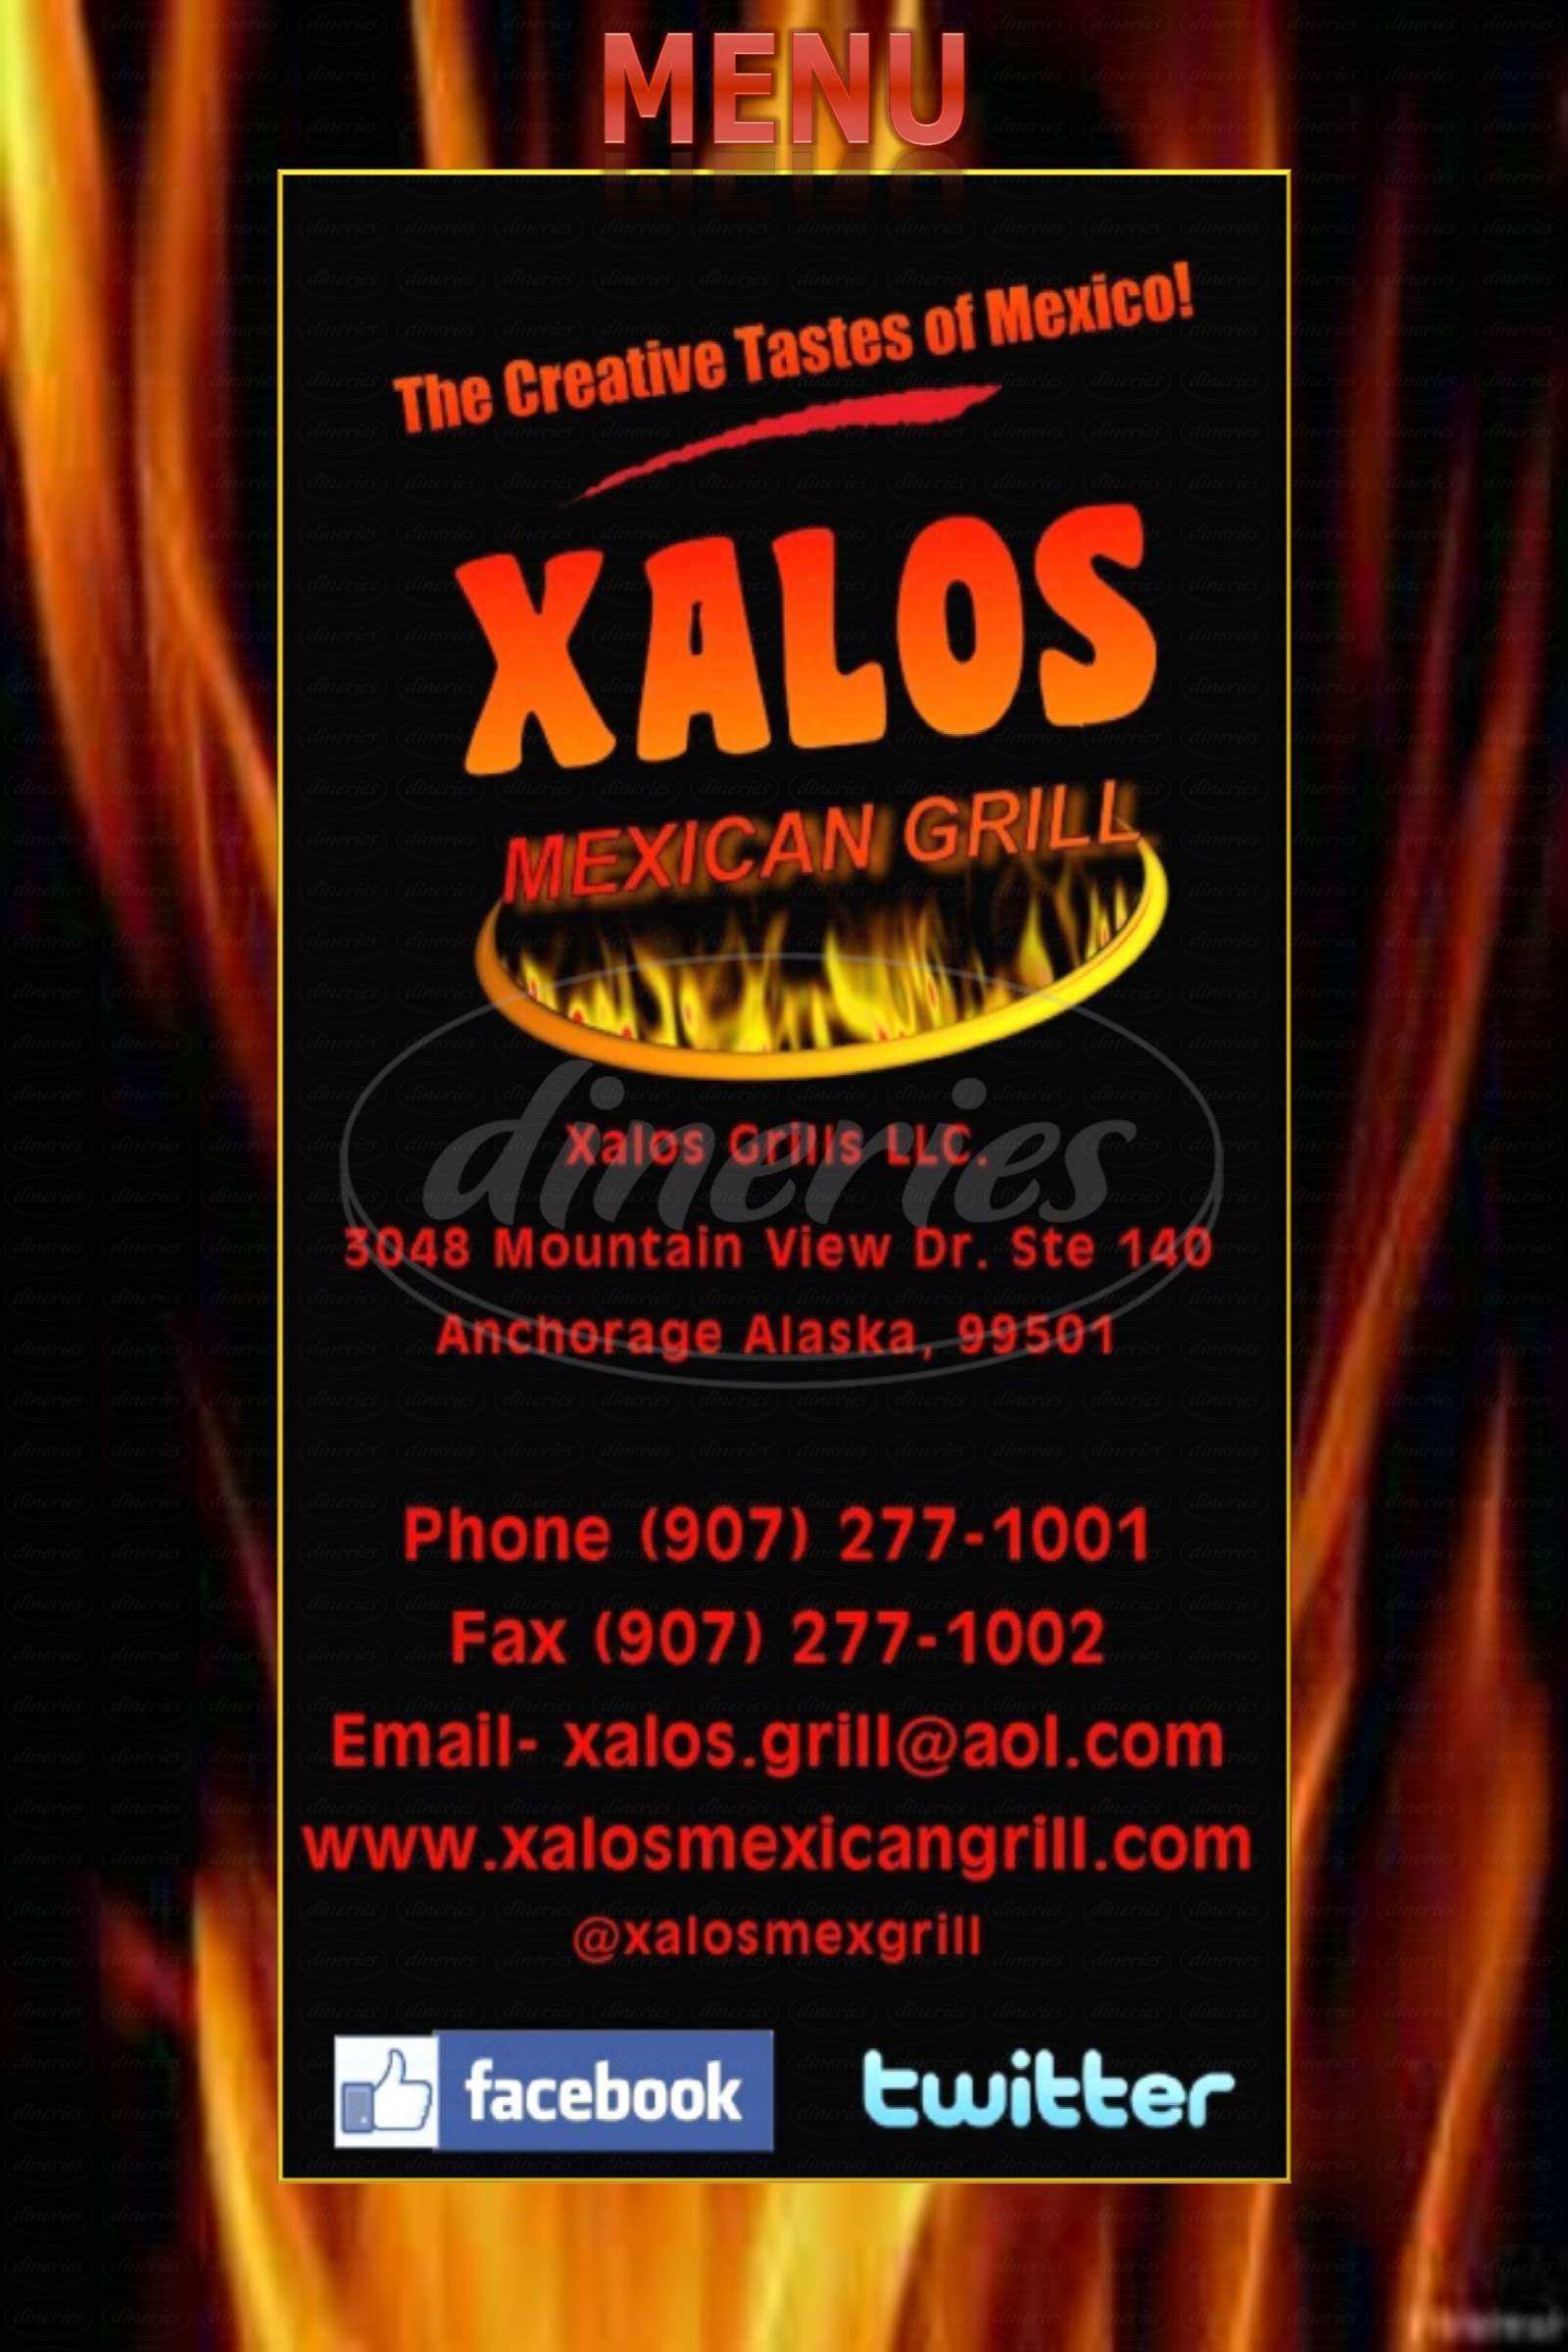 menu for Xalos Mexican Grill